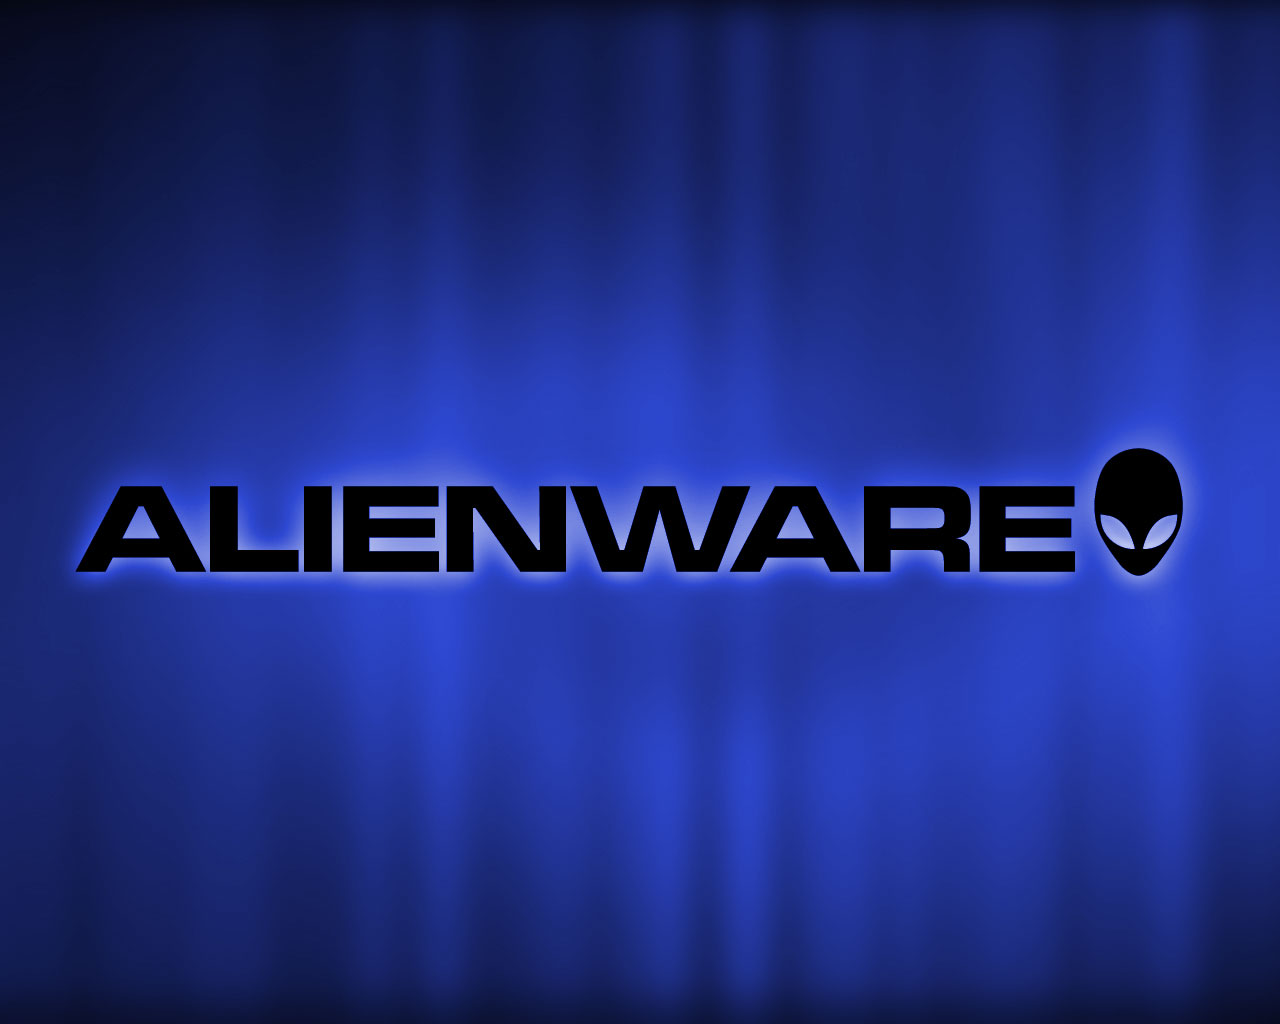 Alienware Wallpaper 5